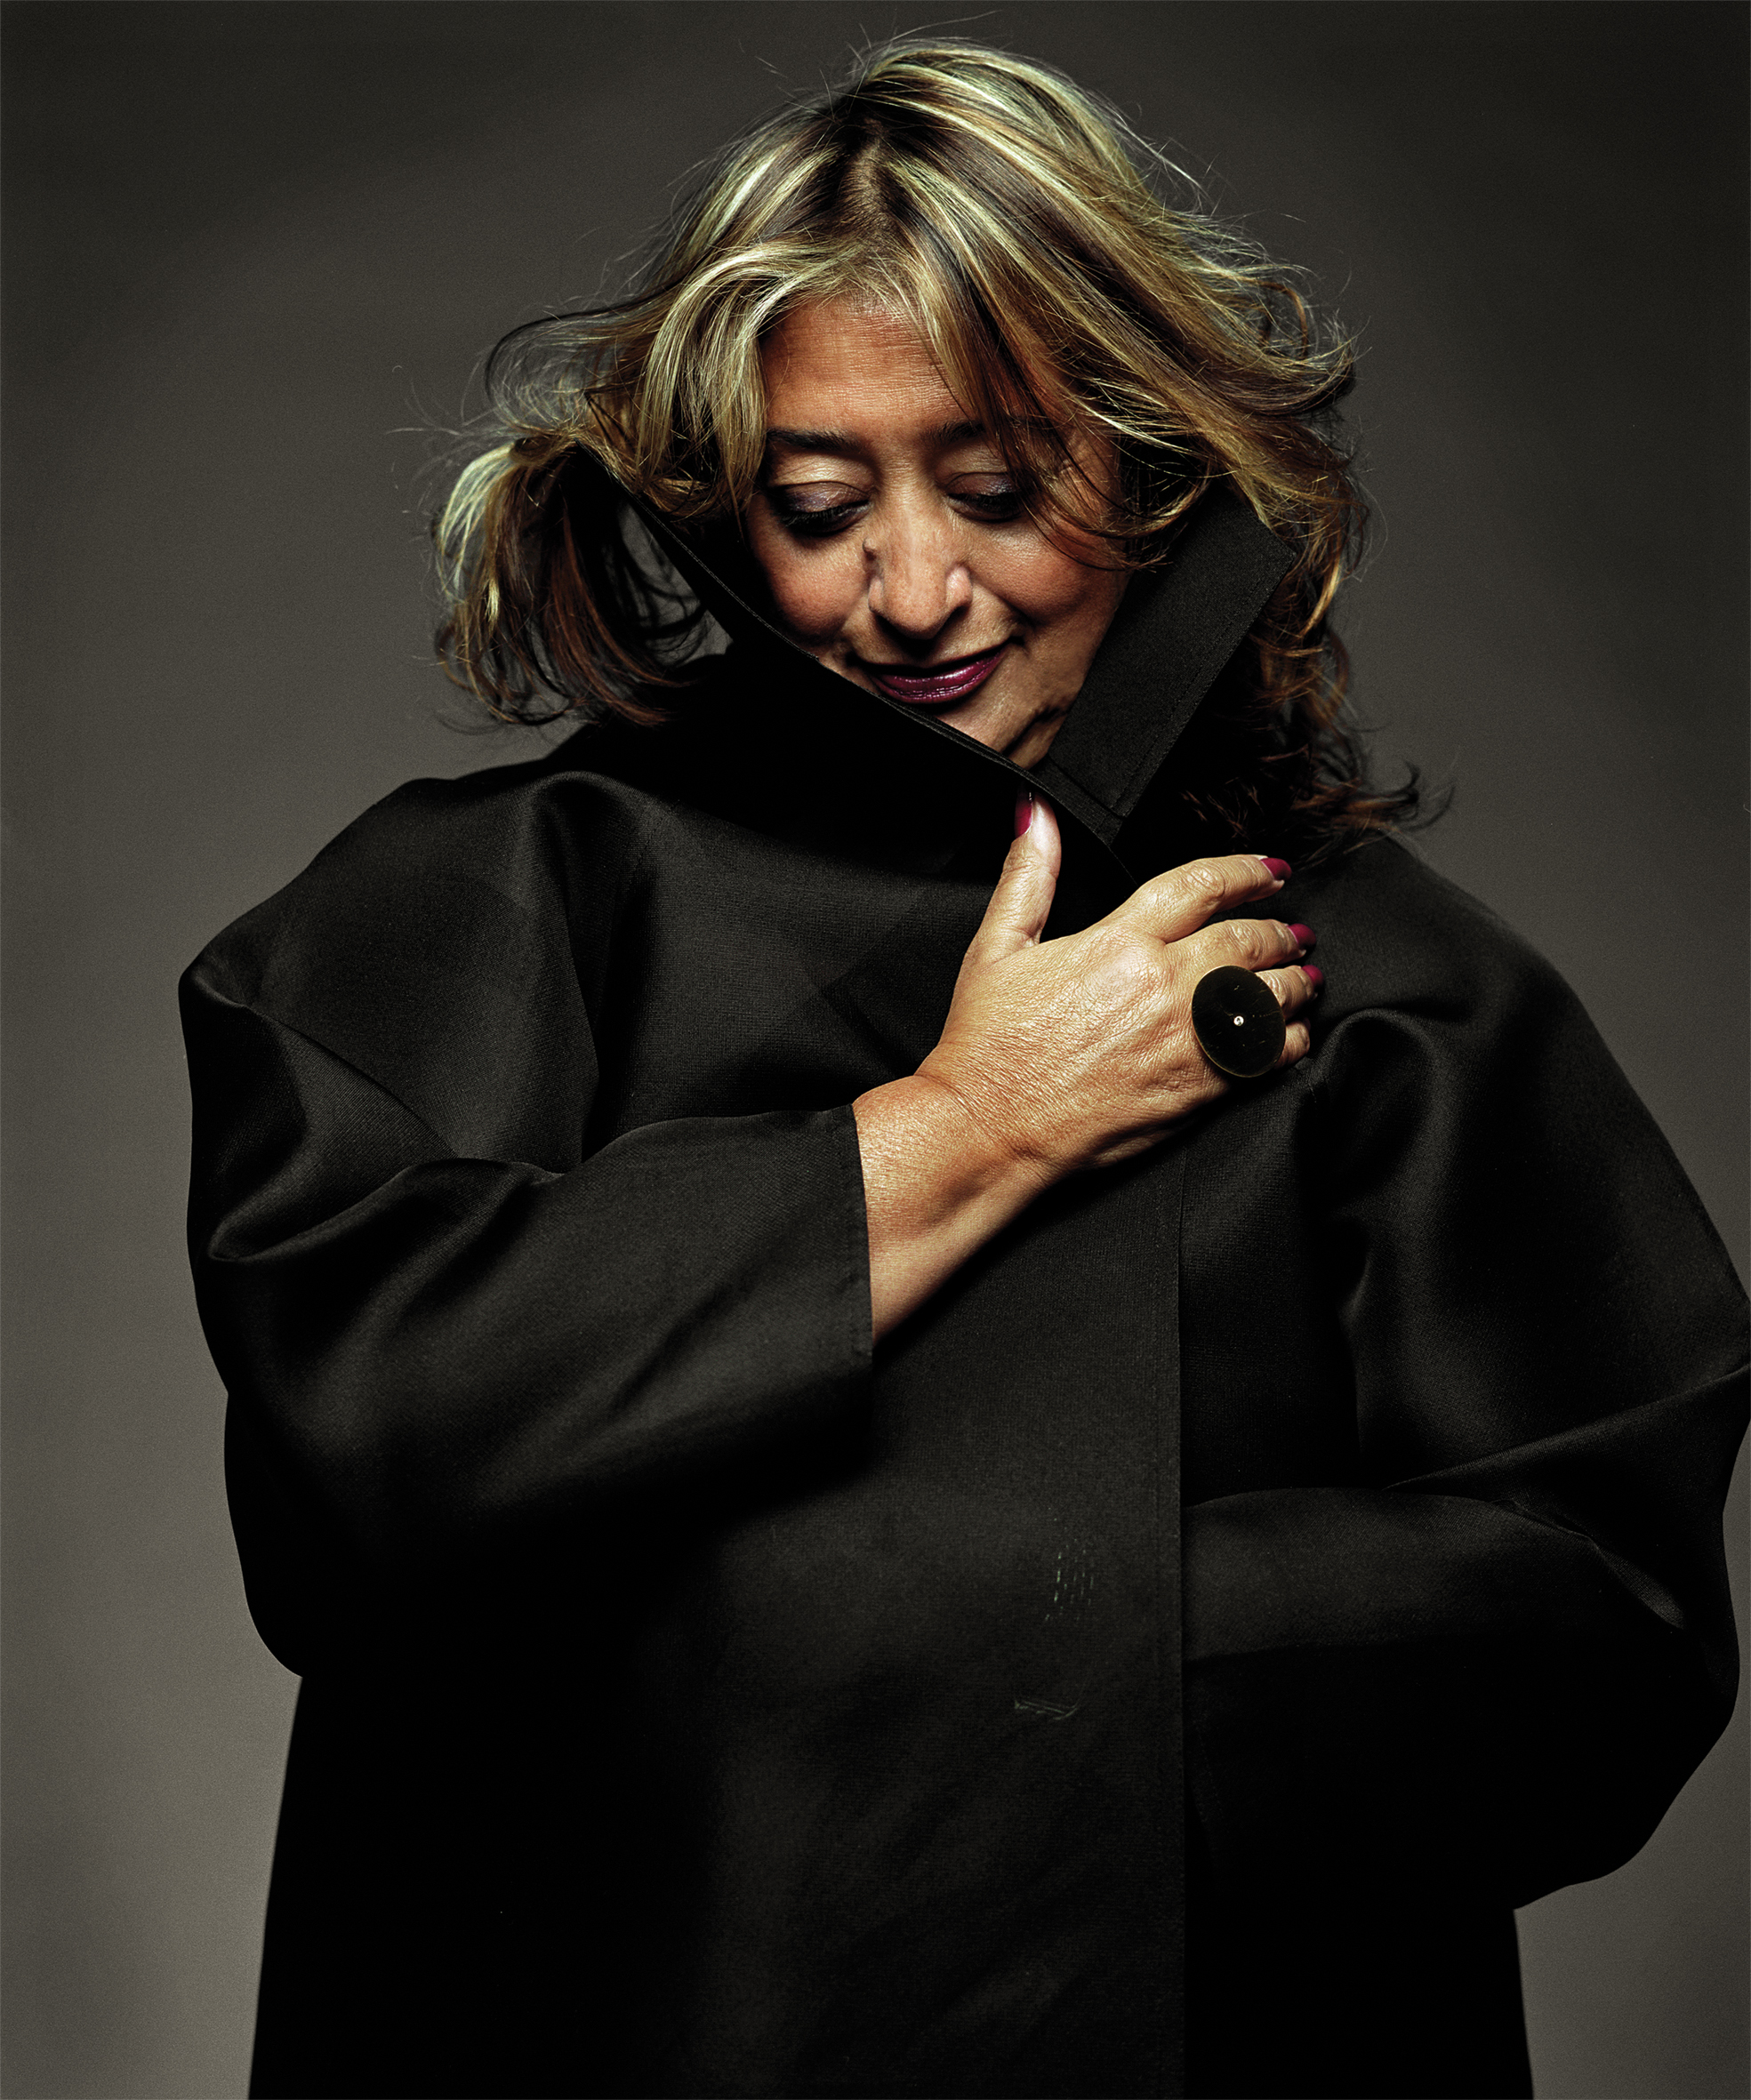 Inspiring Buildings by the Iconic ZAHA HADID